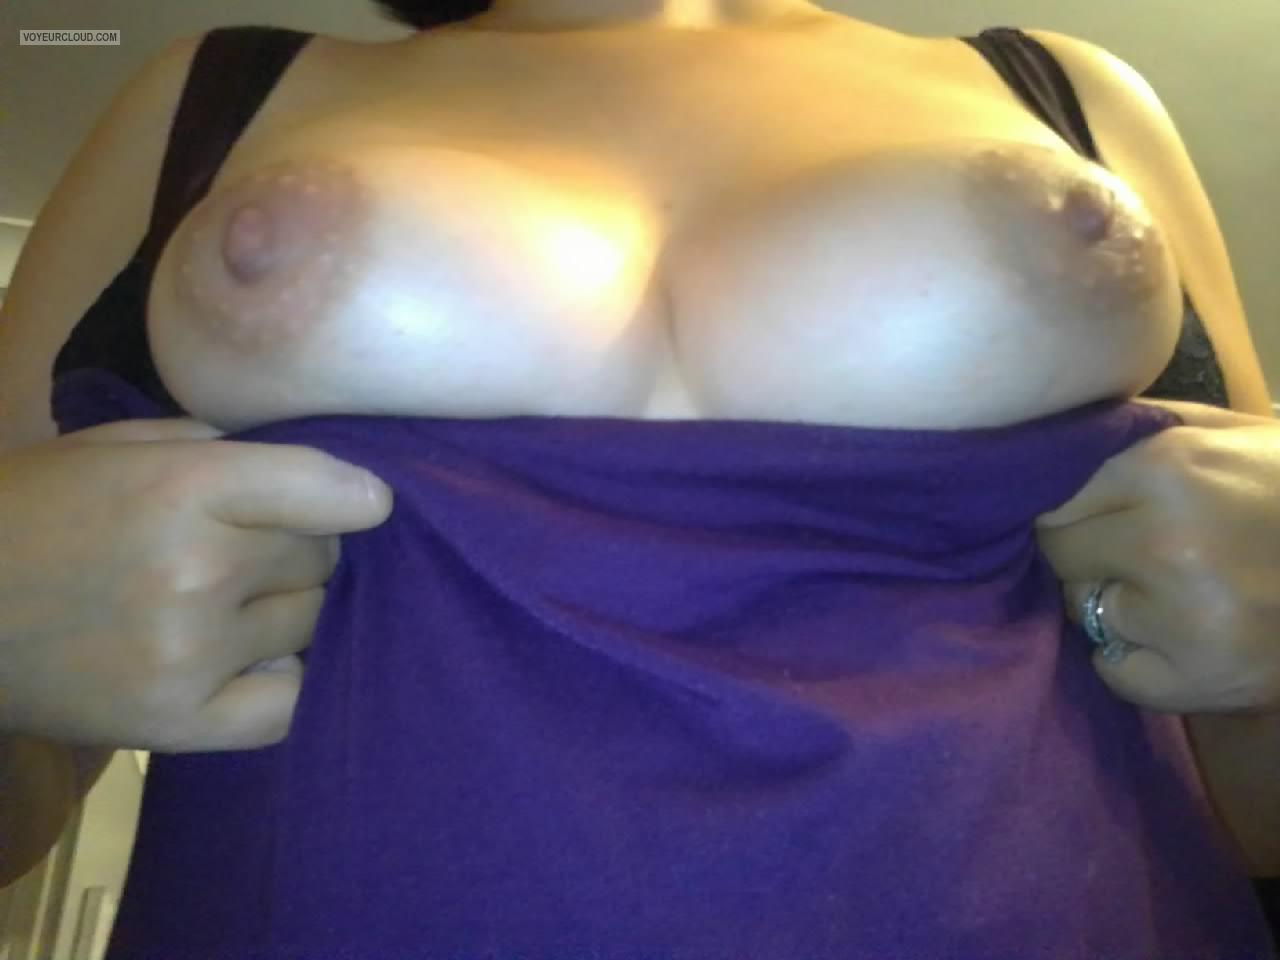 Tit Flash: My Medium Tits (Selfie) - Ems from United Kingdom